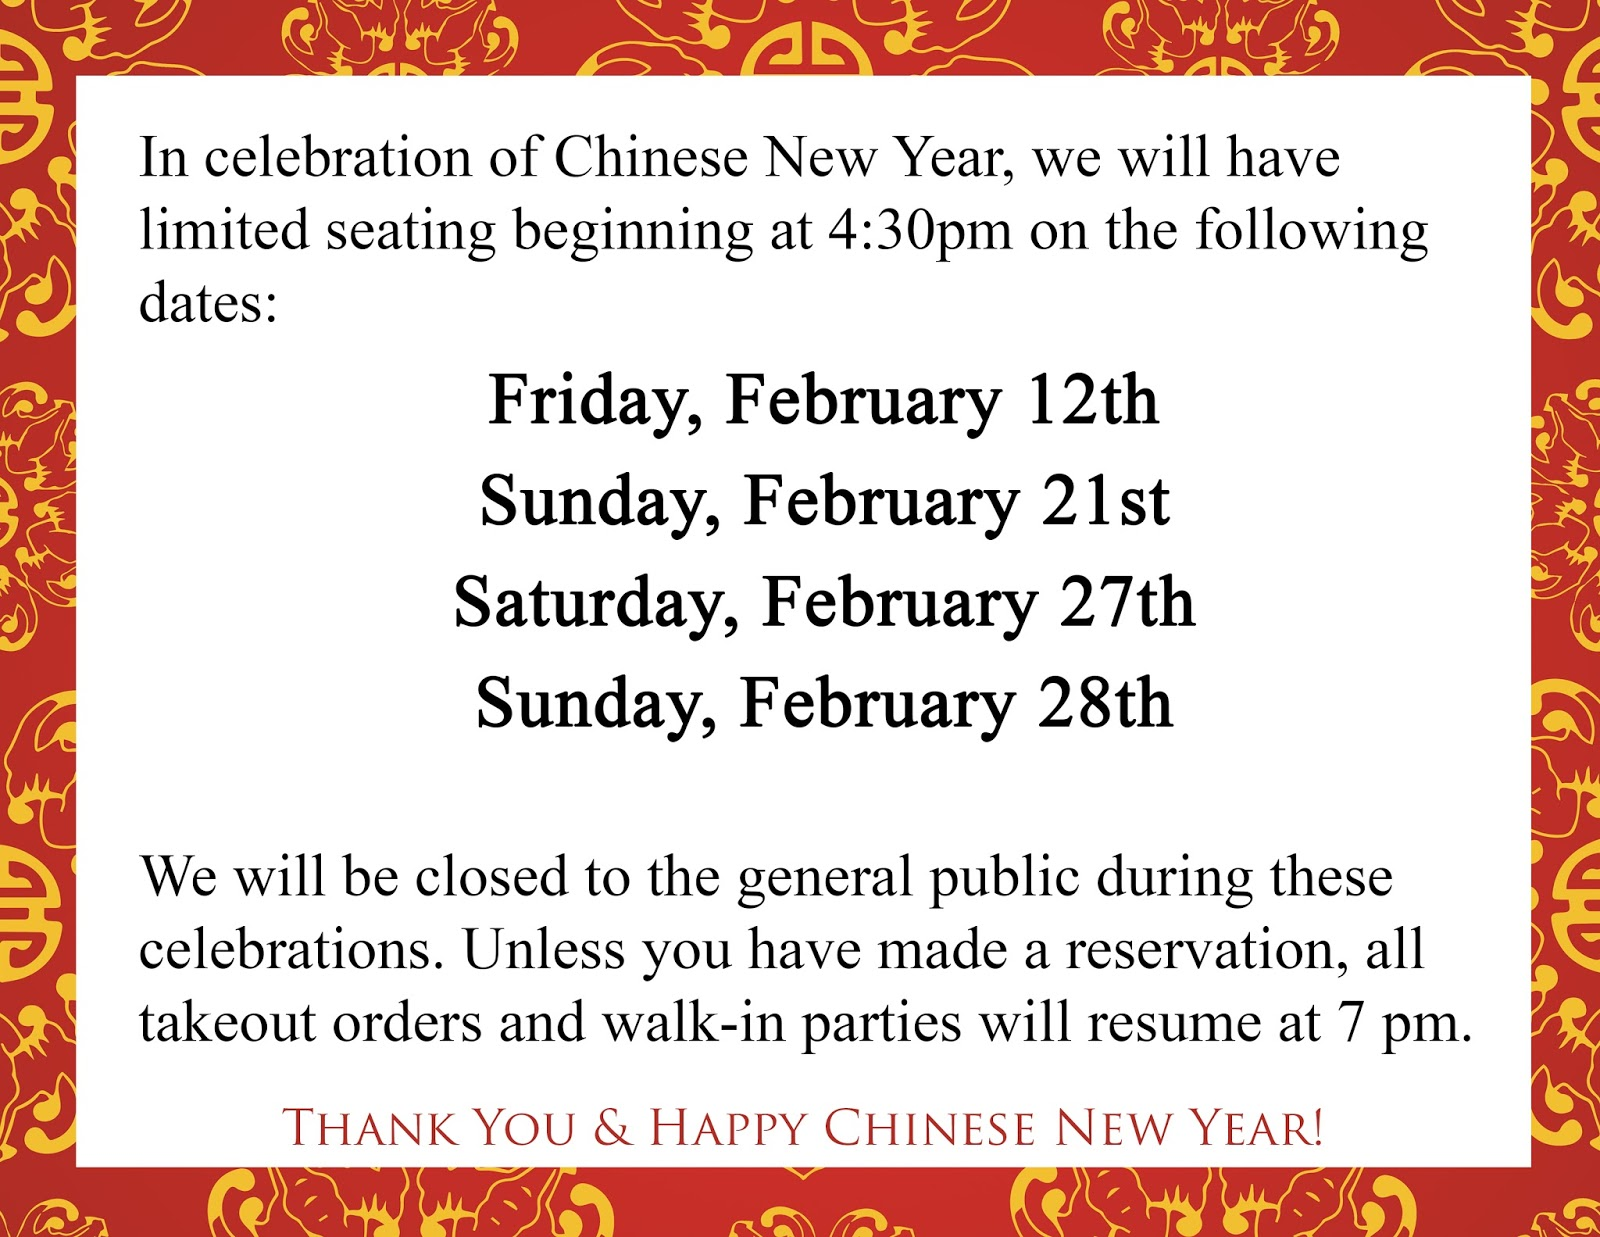 chinese new year is just around the corner so please take note of the dates and details below - Chinese New Year 2016 Date